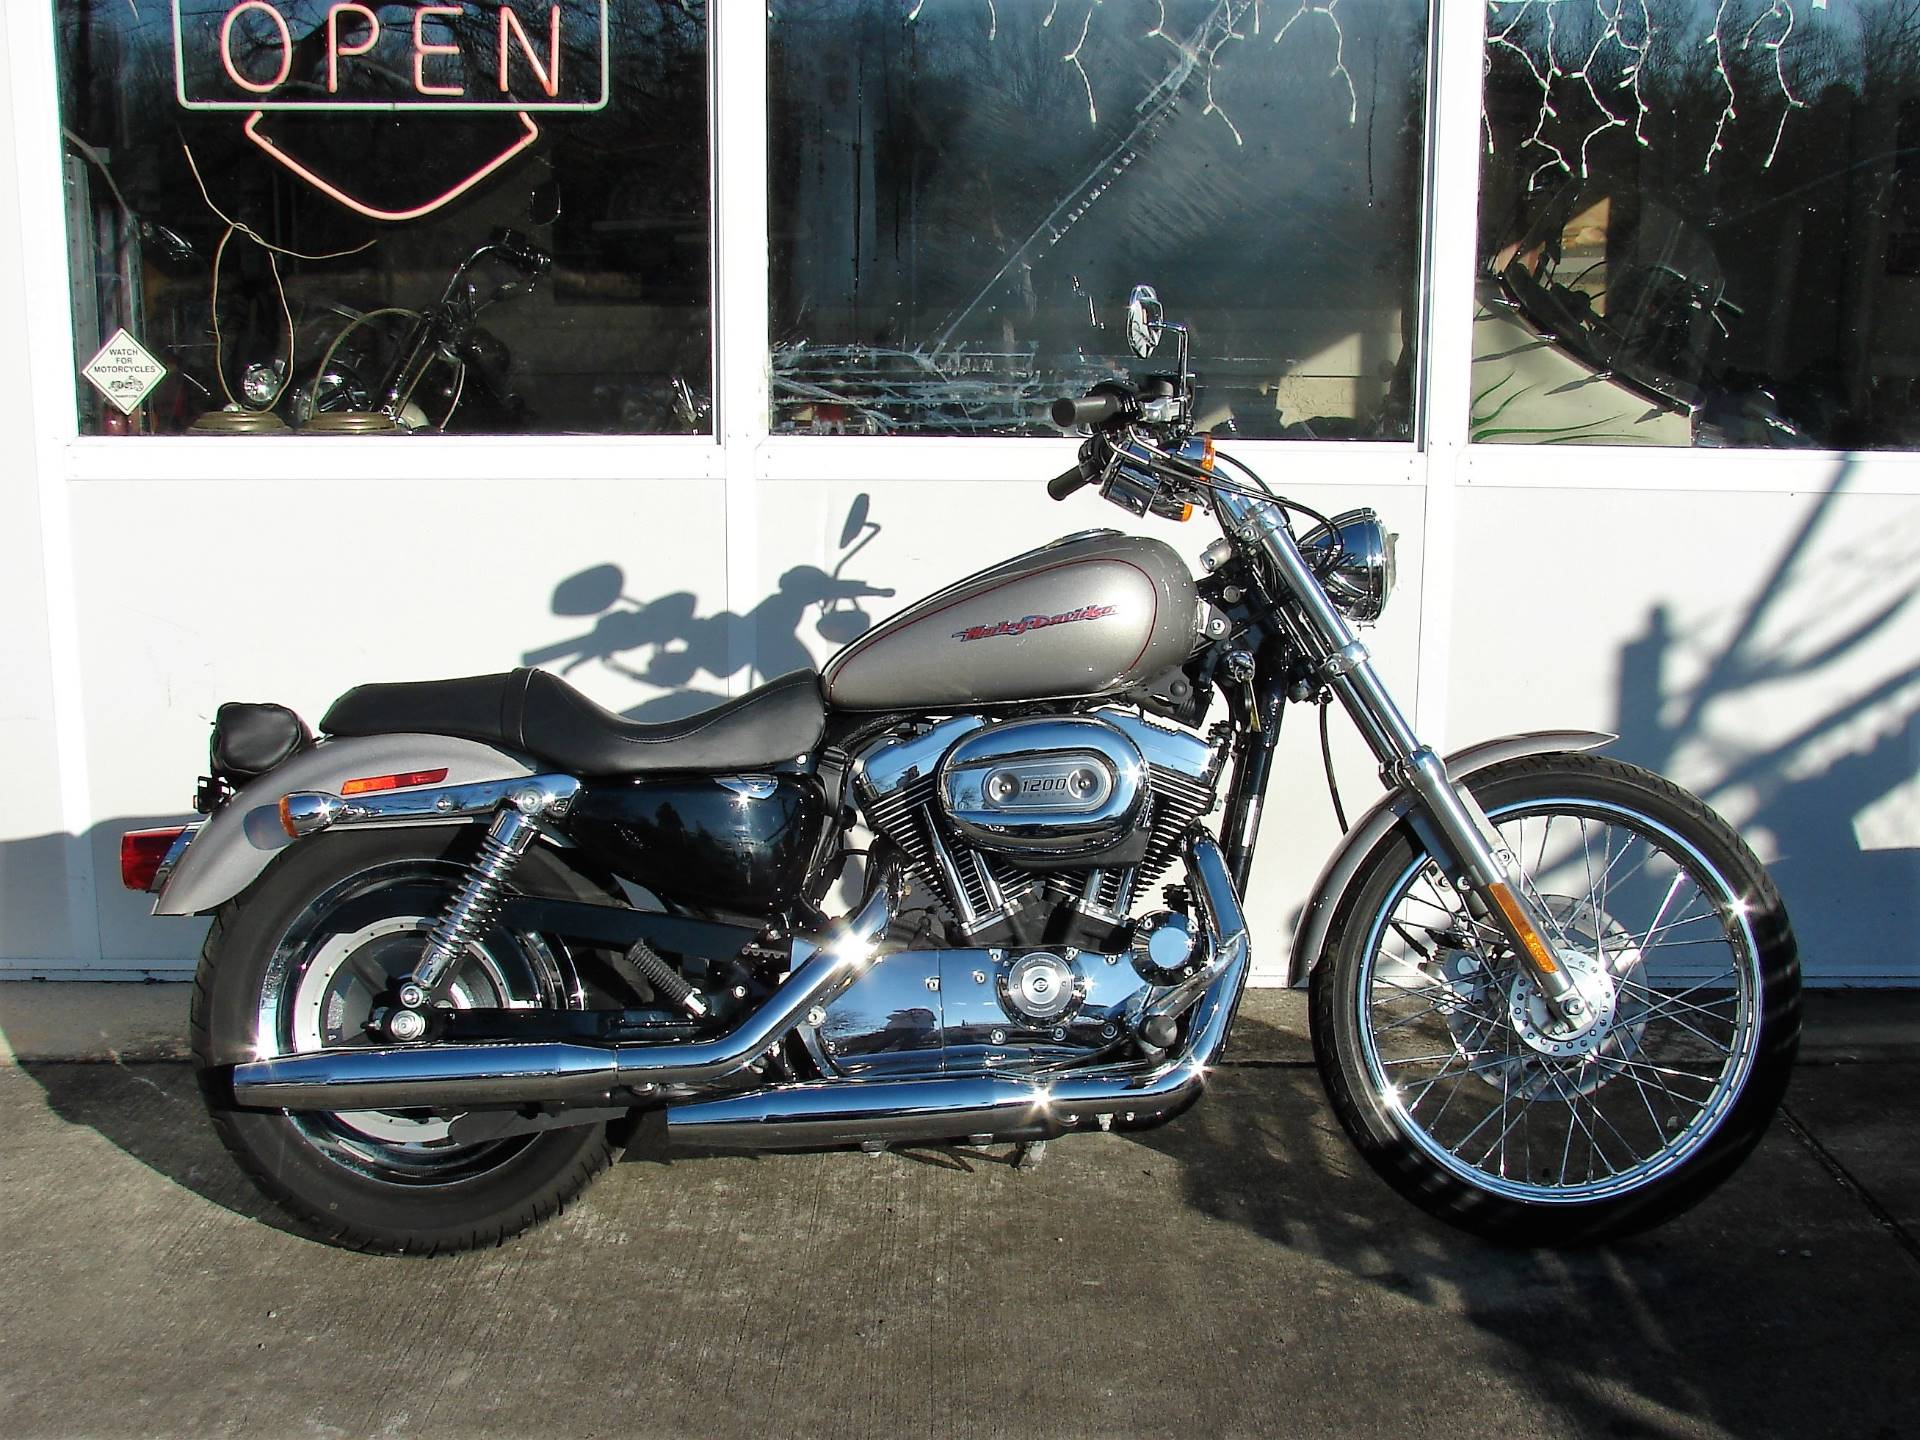 2007 Harley-Davidson XL 1200 Sportster Custom in Williamstown, New Jersey - Photo 1